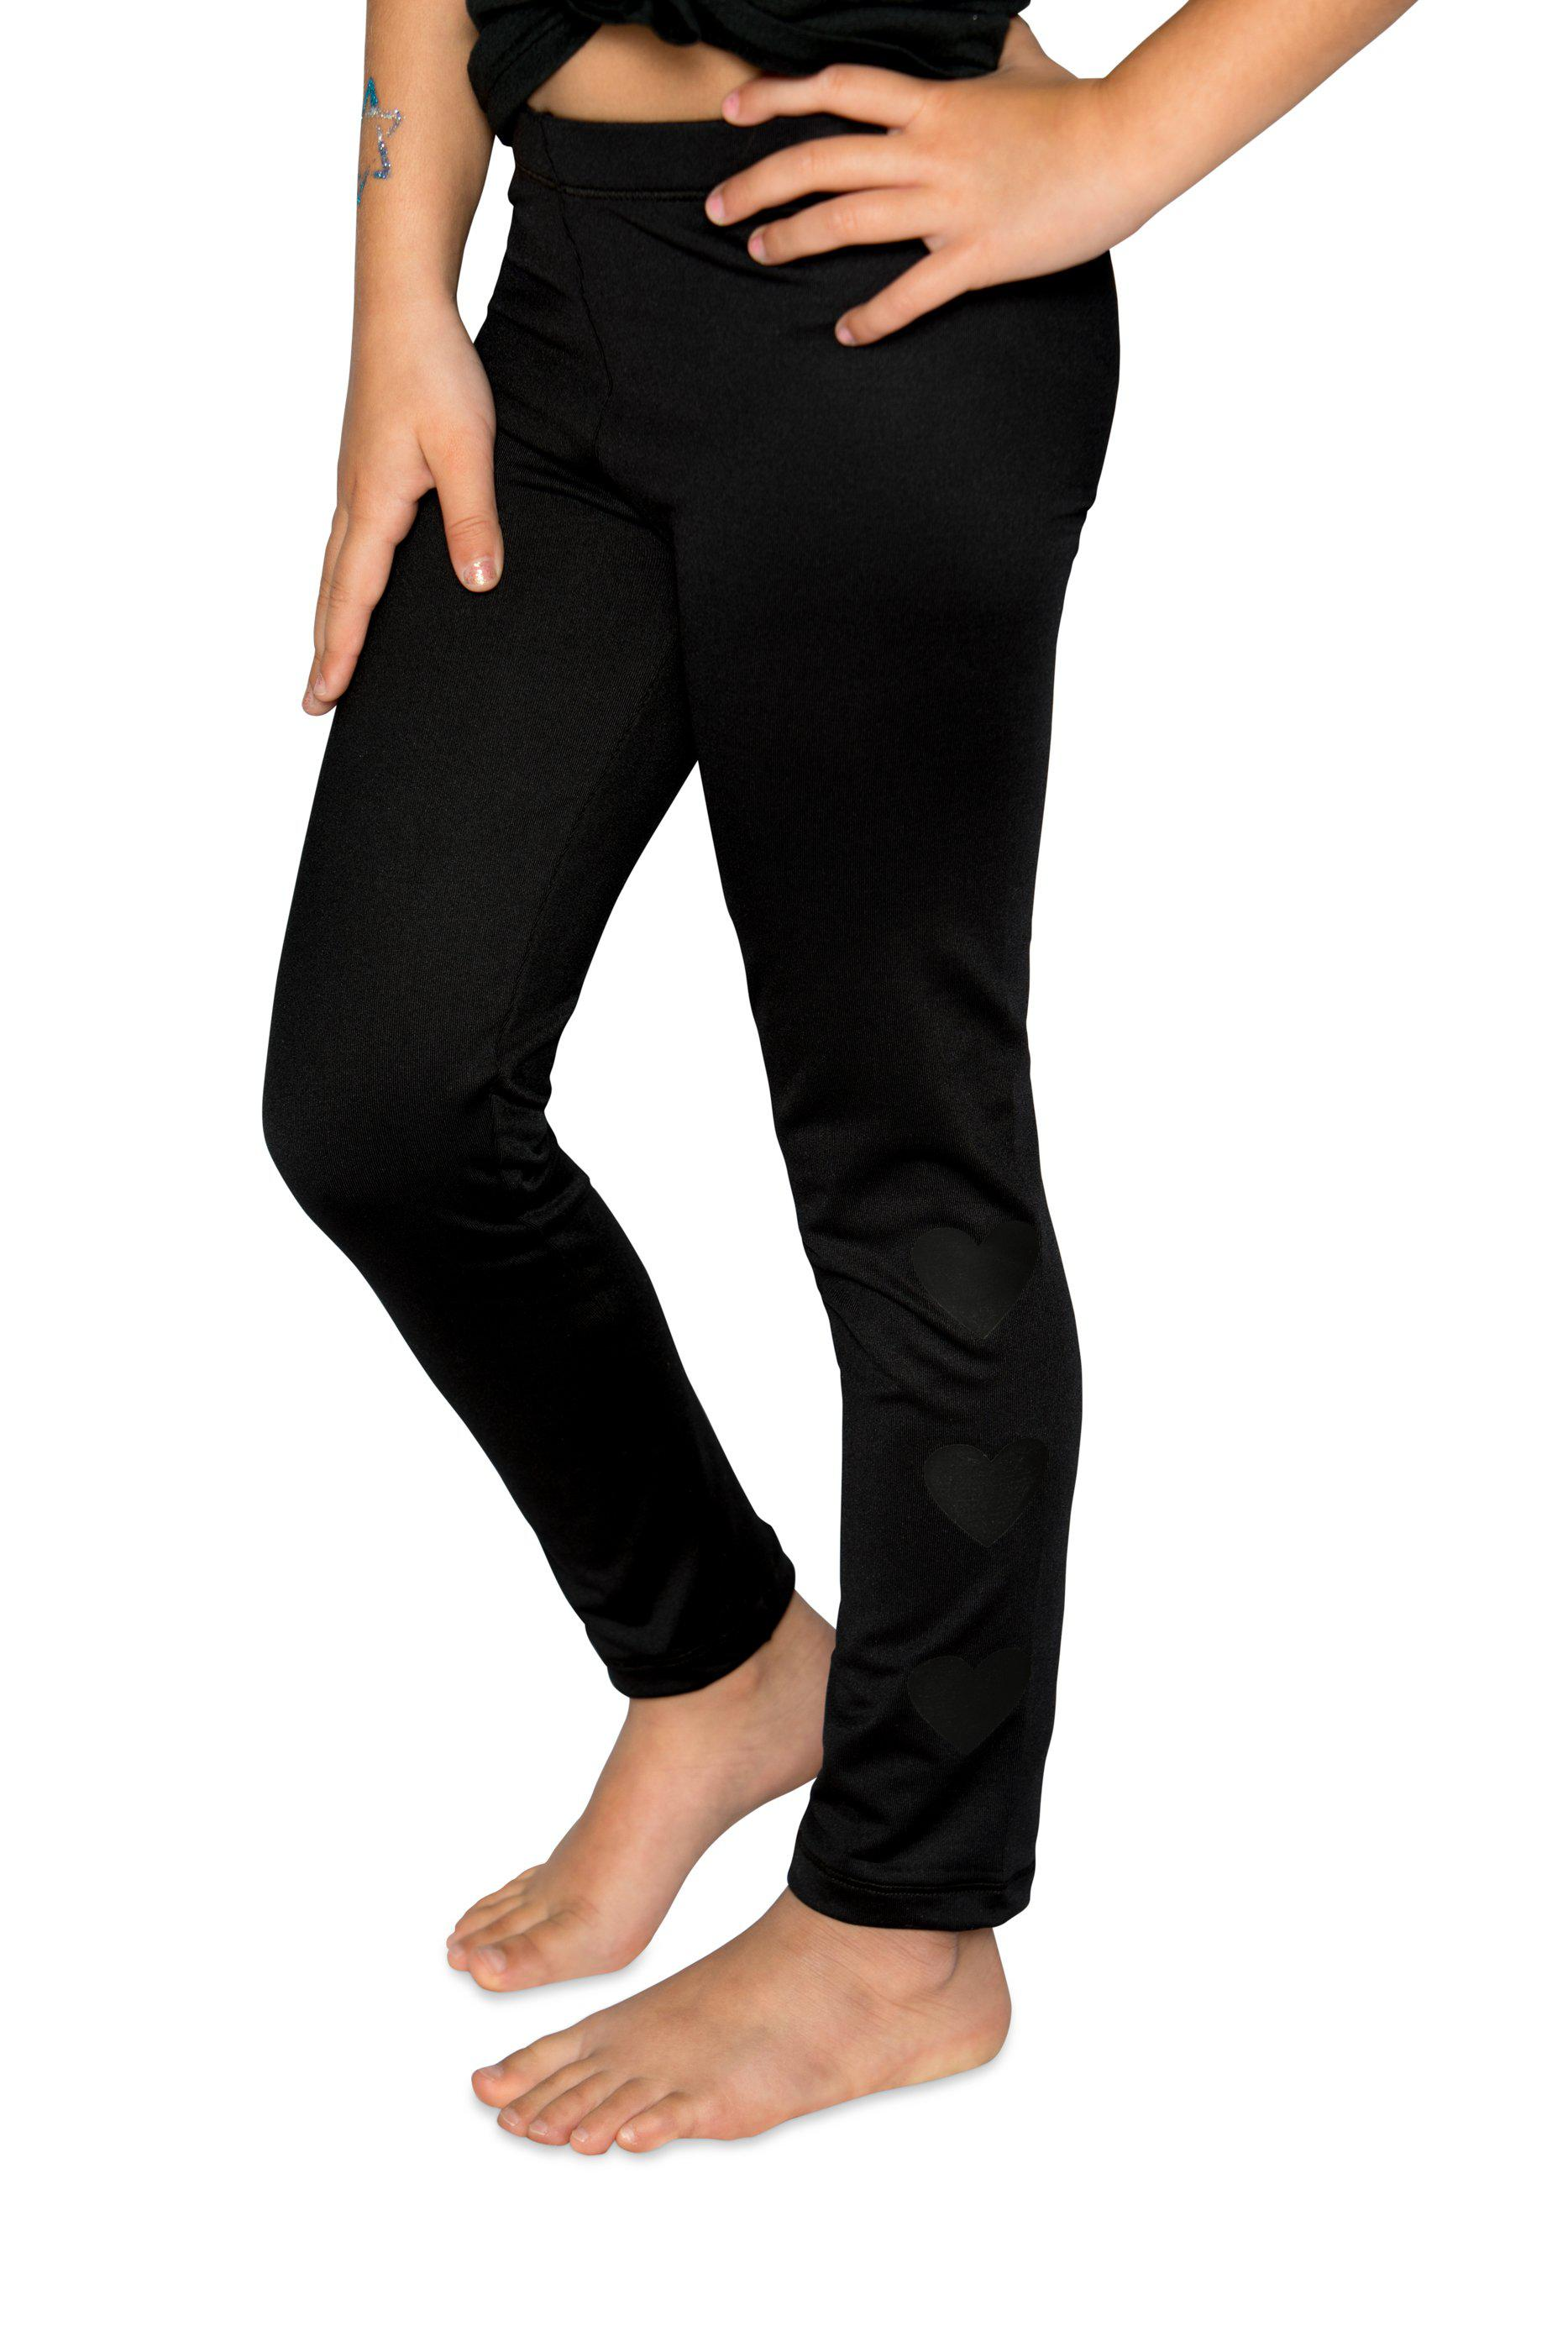 Hearts Legging- Black/Black